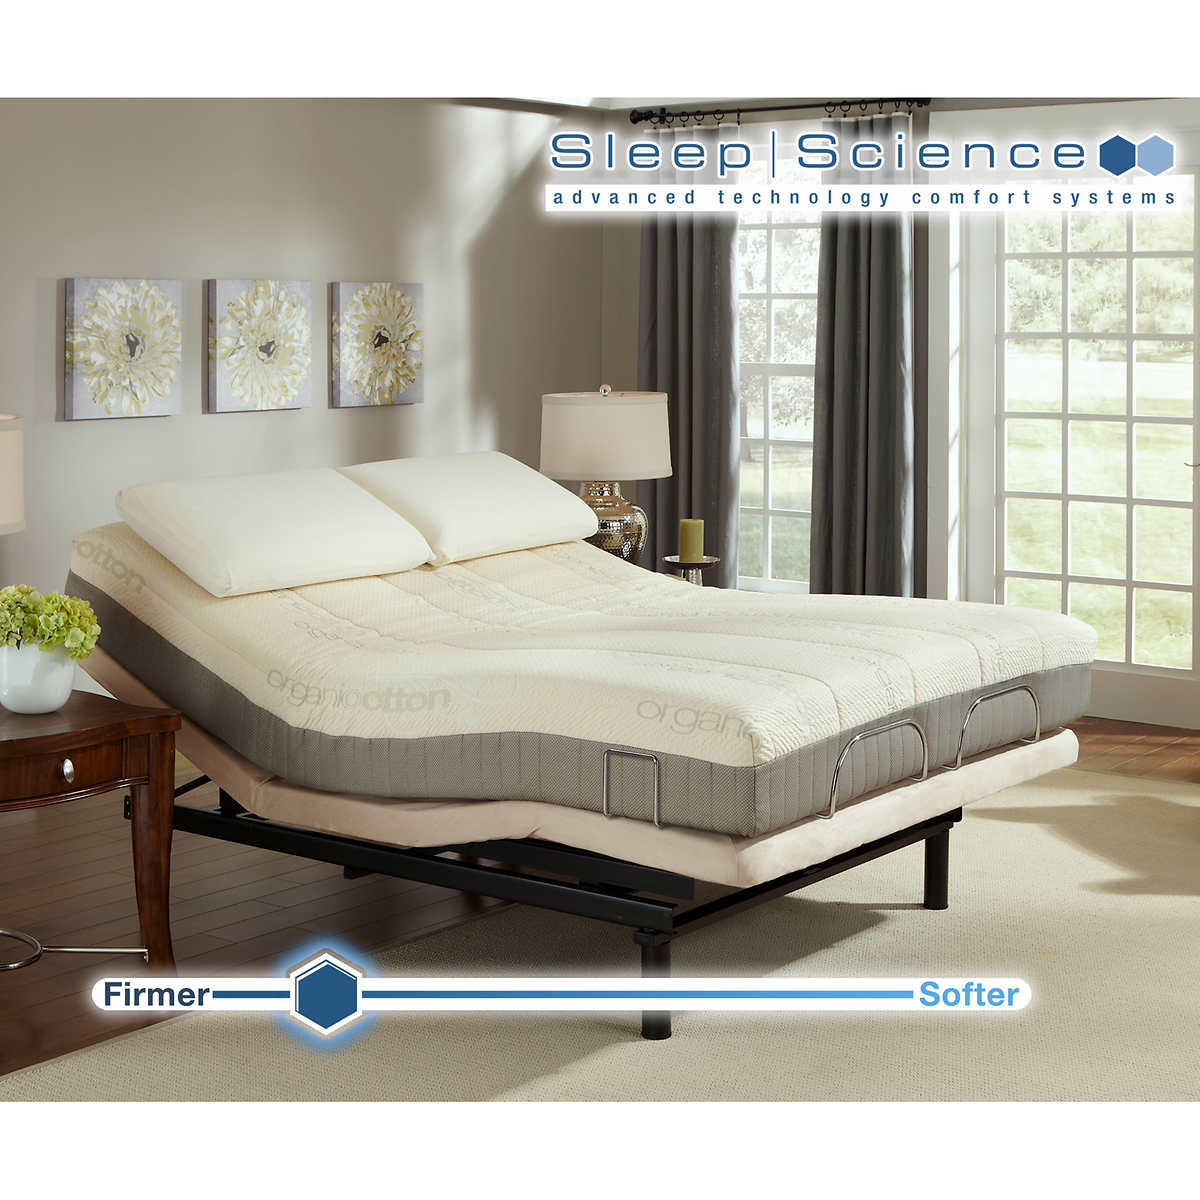 sleep science 9 natural latex queen mattress with adjustable power base medium firm - Adjustable Queen Bed Frame